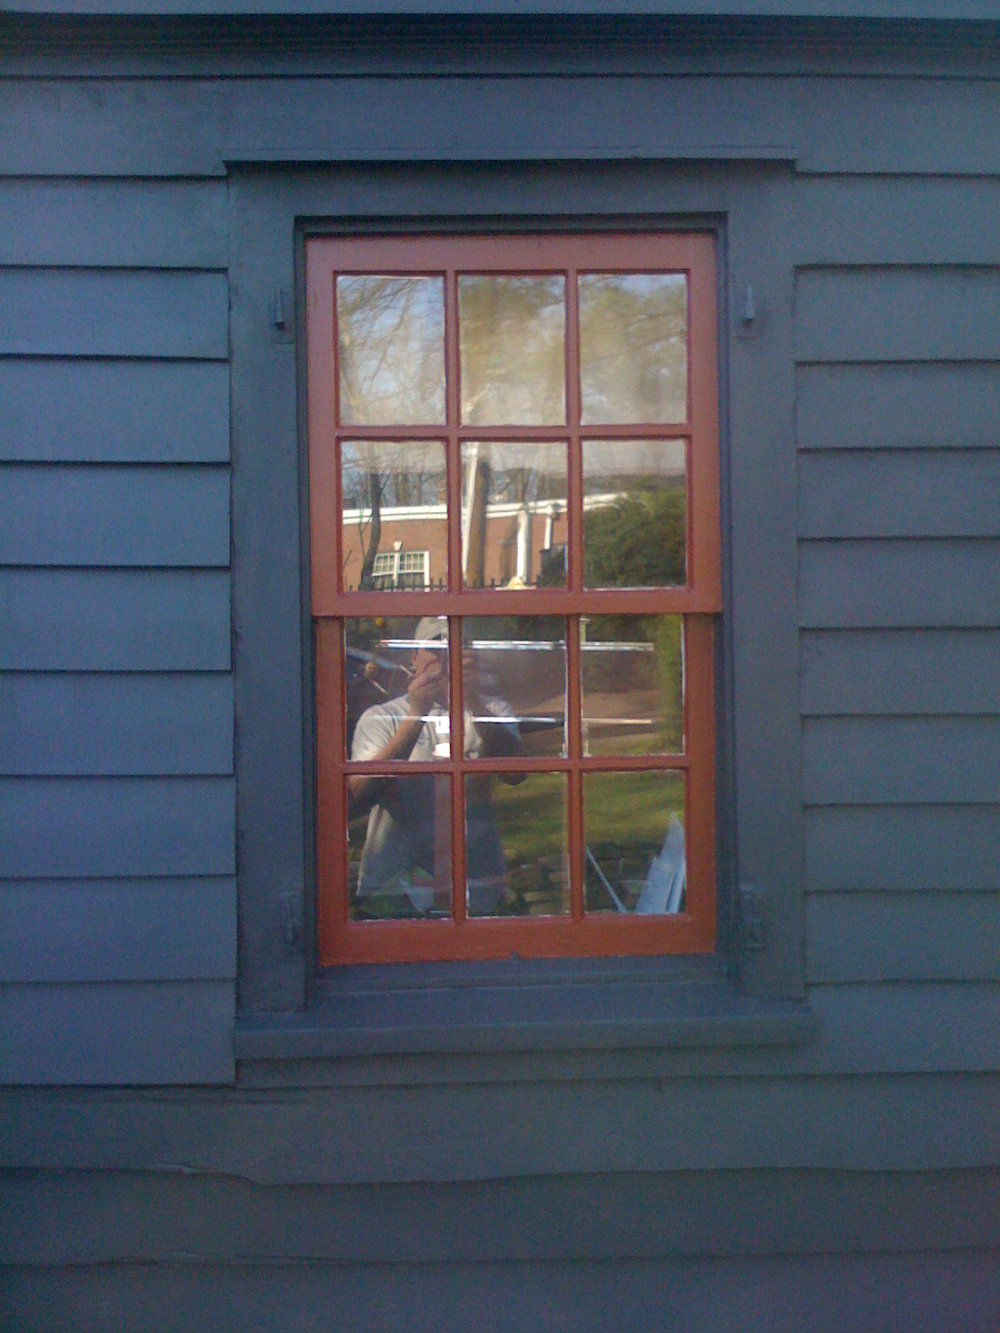 blue wood siding with red windows and sashes on exterior wood